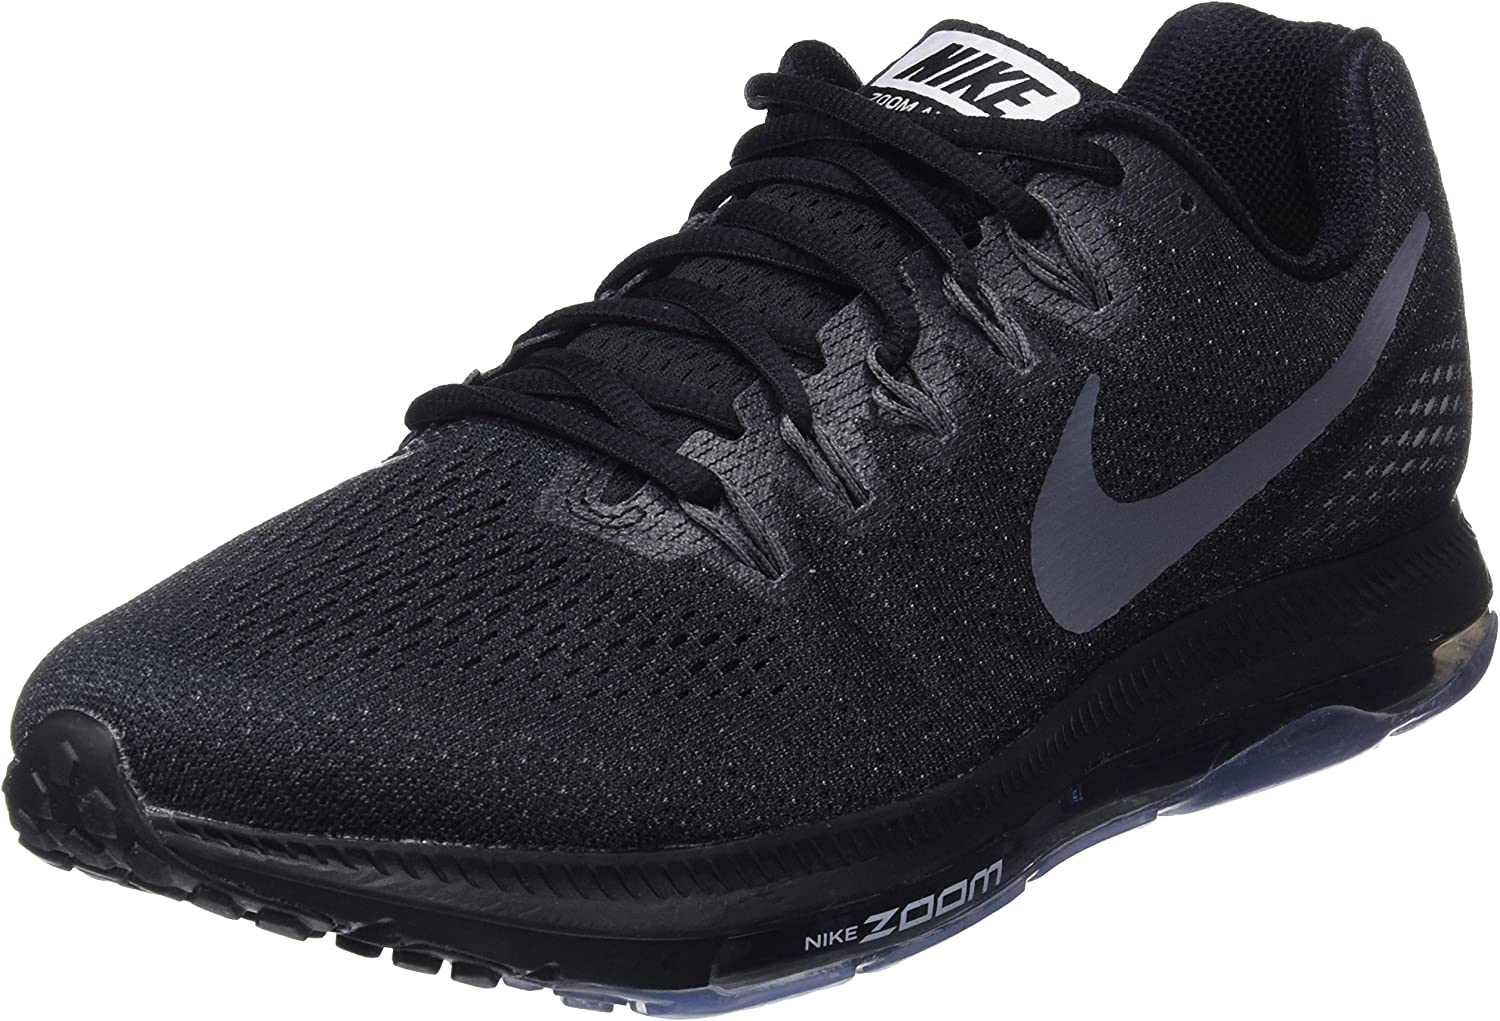 Nike Men's Zoom All Out Low Running Shoe Sz. 8.5 Black